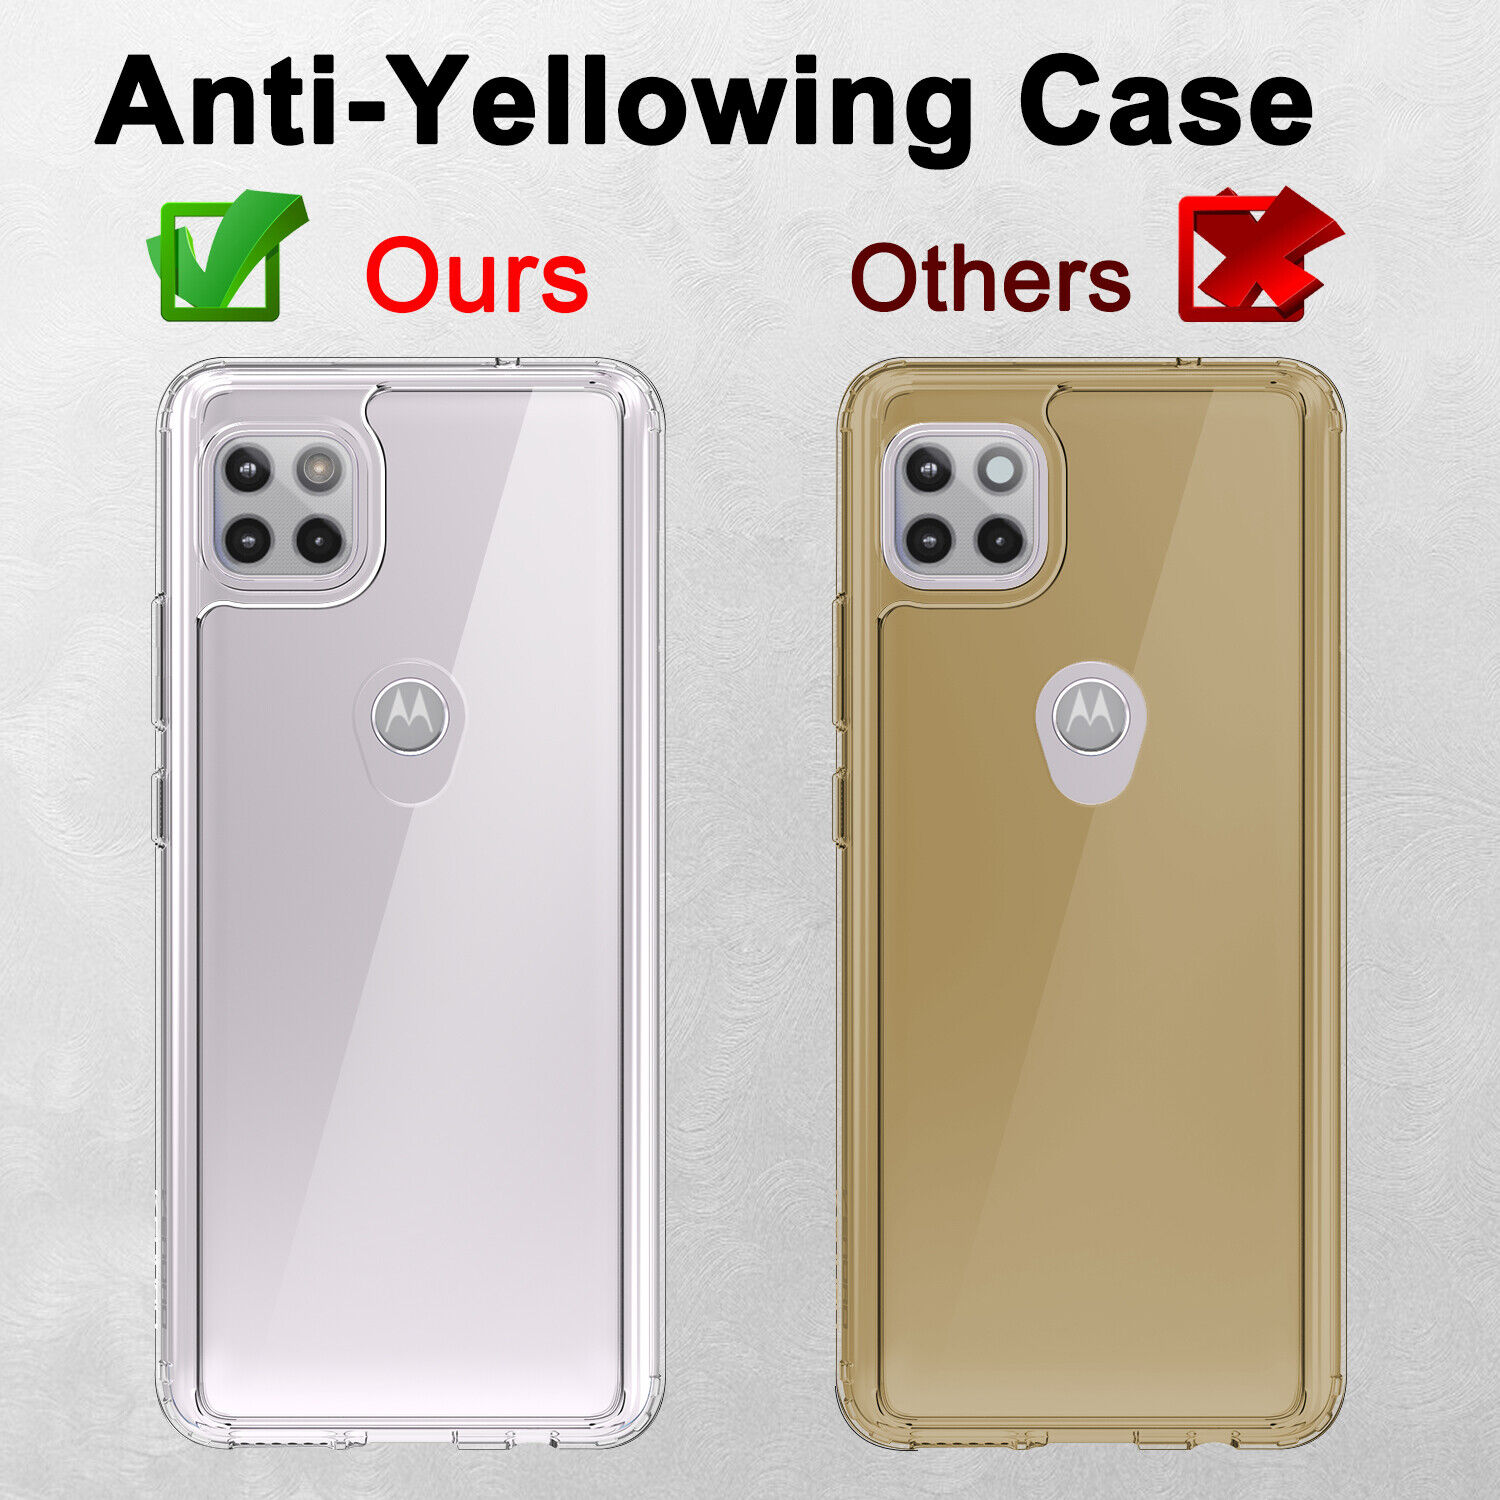 For Motorola Moto One 5G Ace Clear Case Shockproof Slim Cover / Screen Protector Cases, Covers & Skins